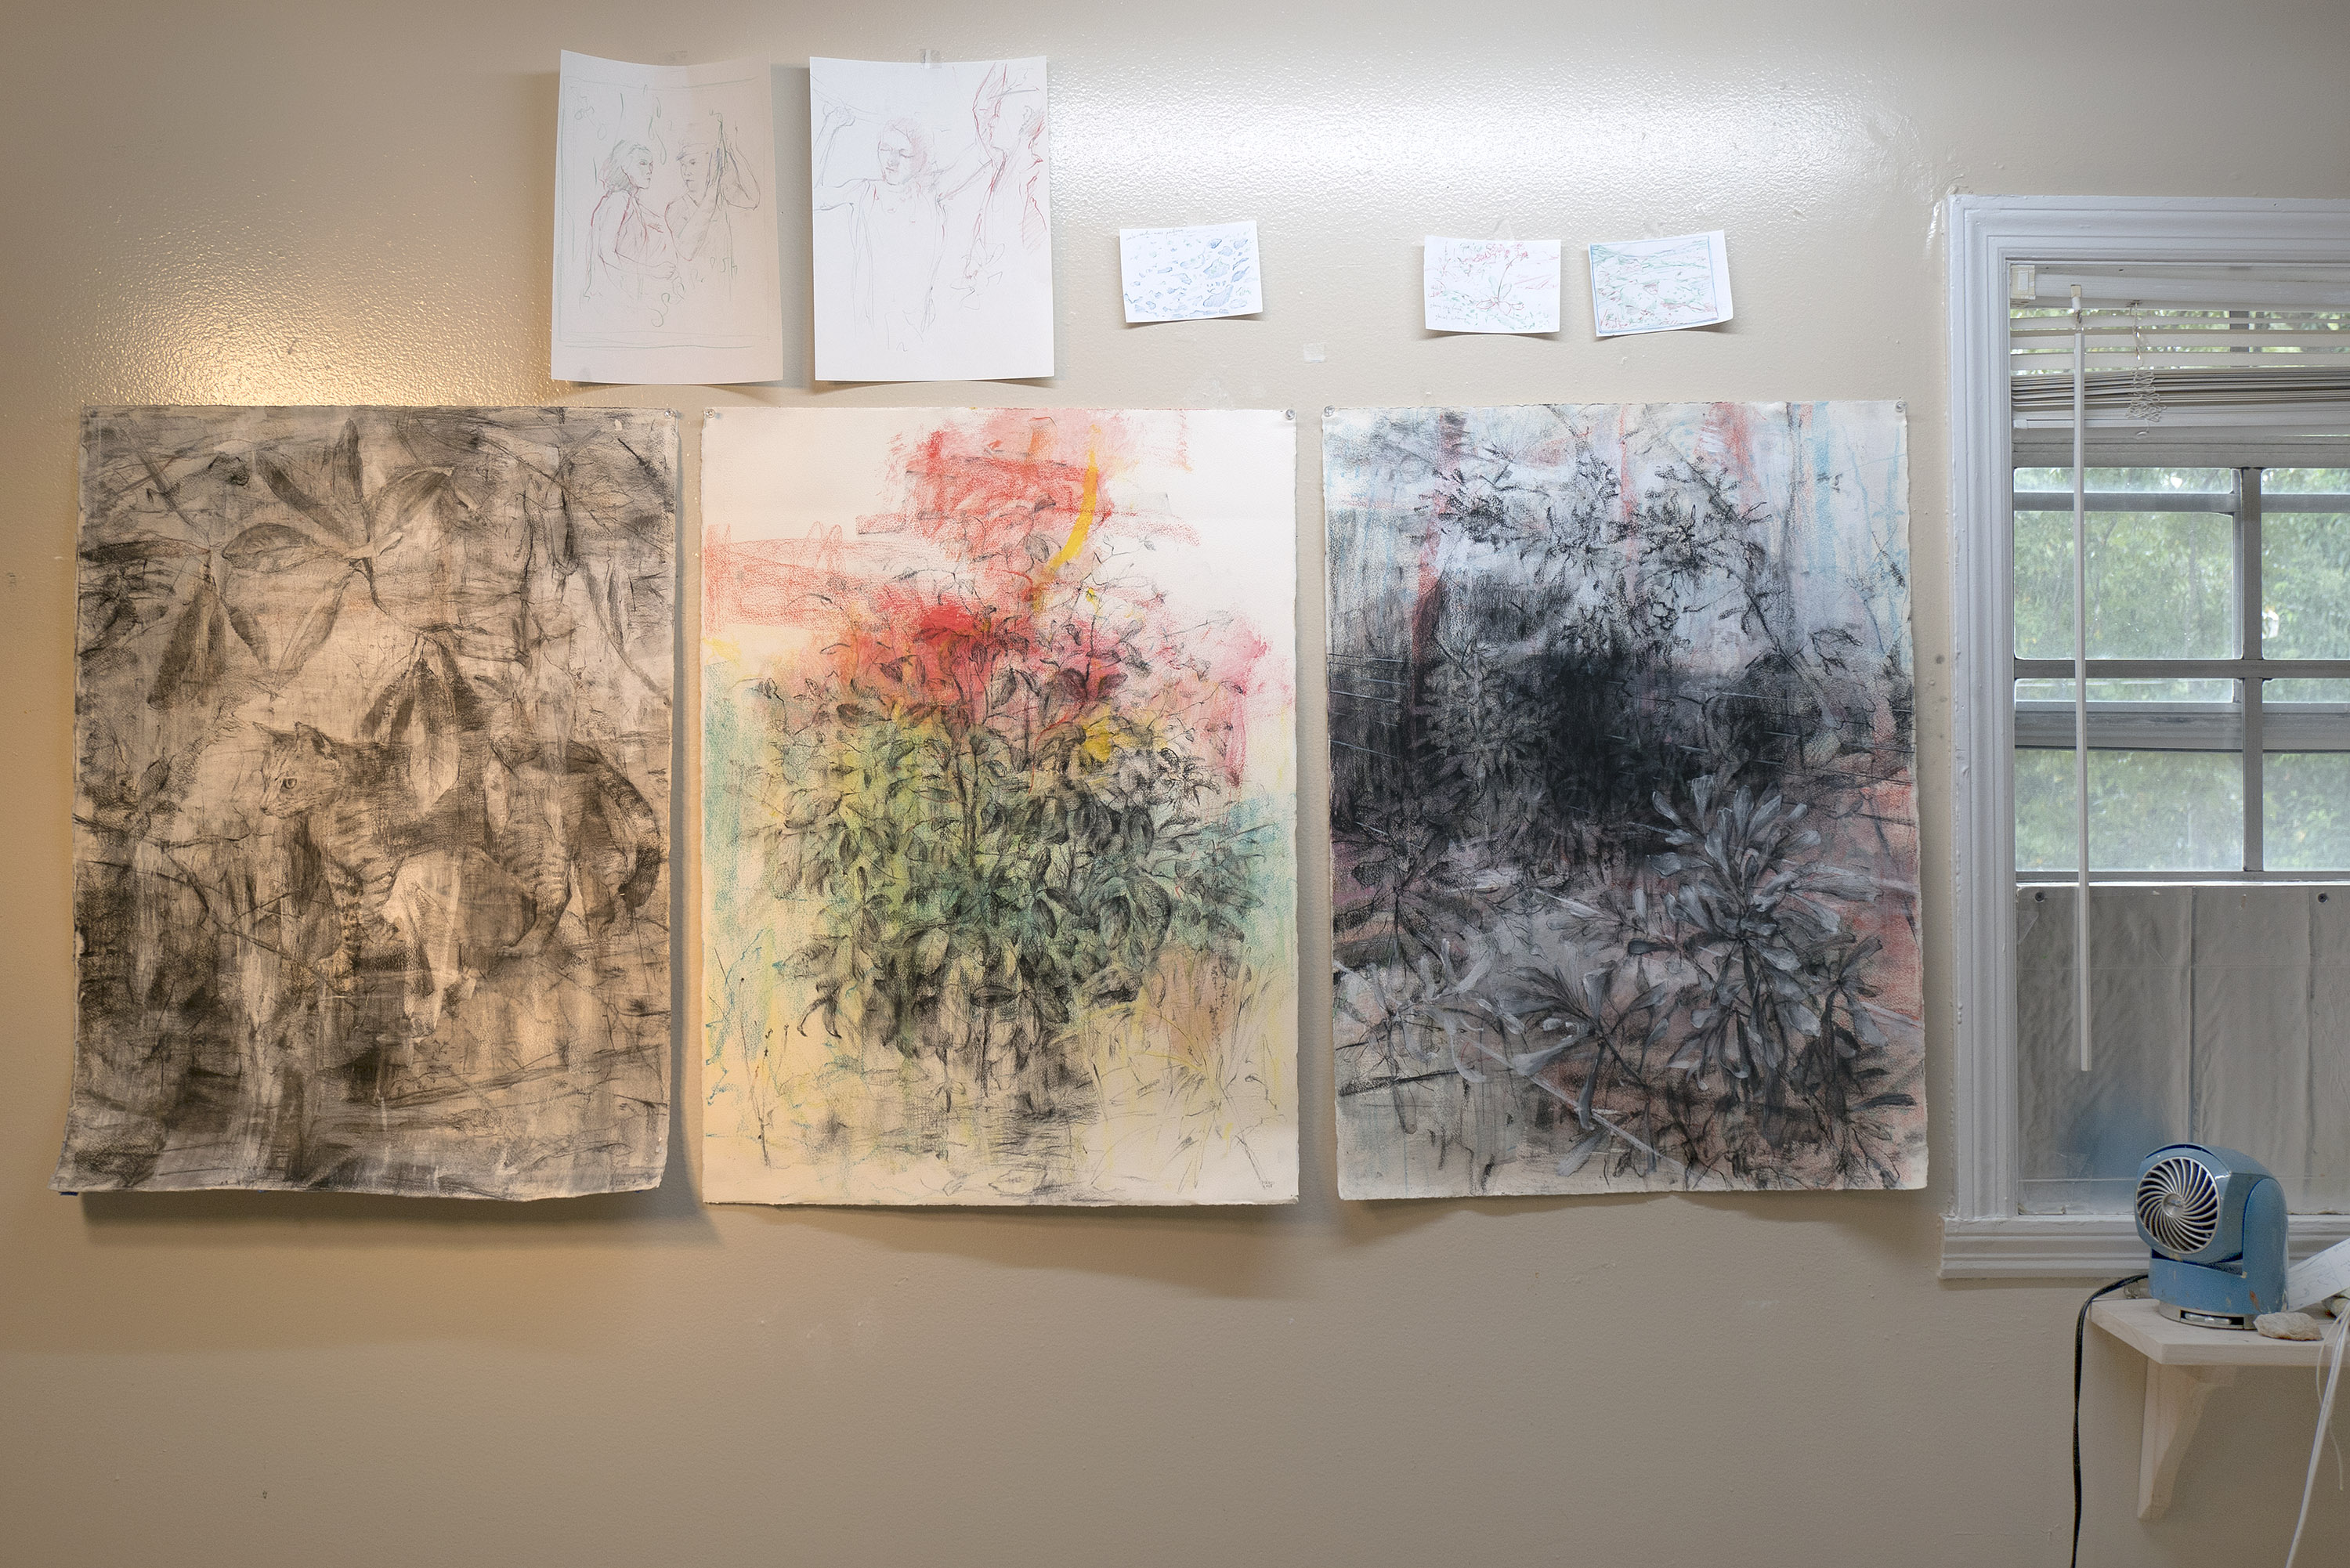 Studio drawings